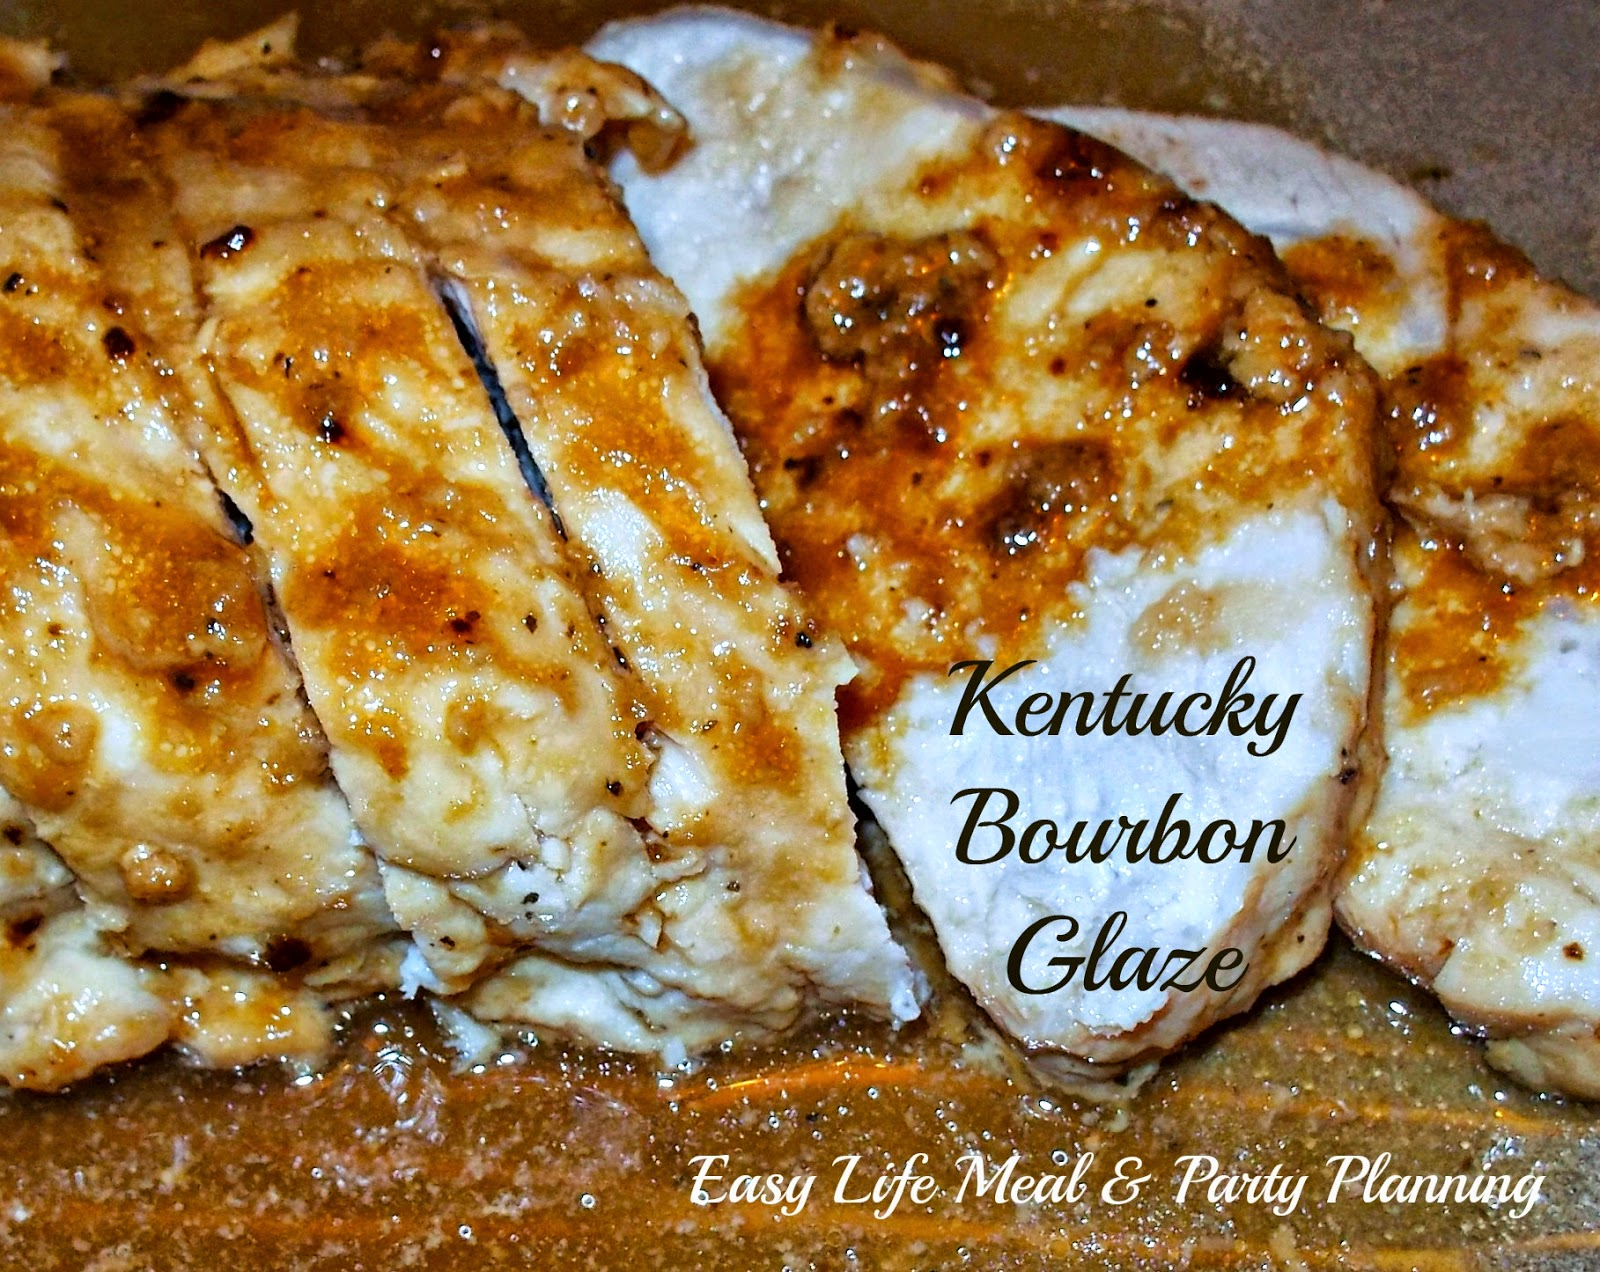 peppered Pork Roast with Kentucky Bourbon Marindate - Easy Life Meal & Party Planning